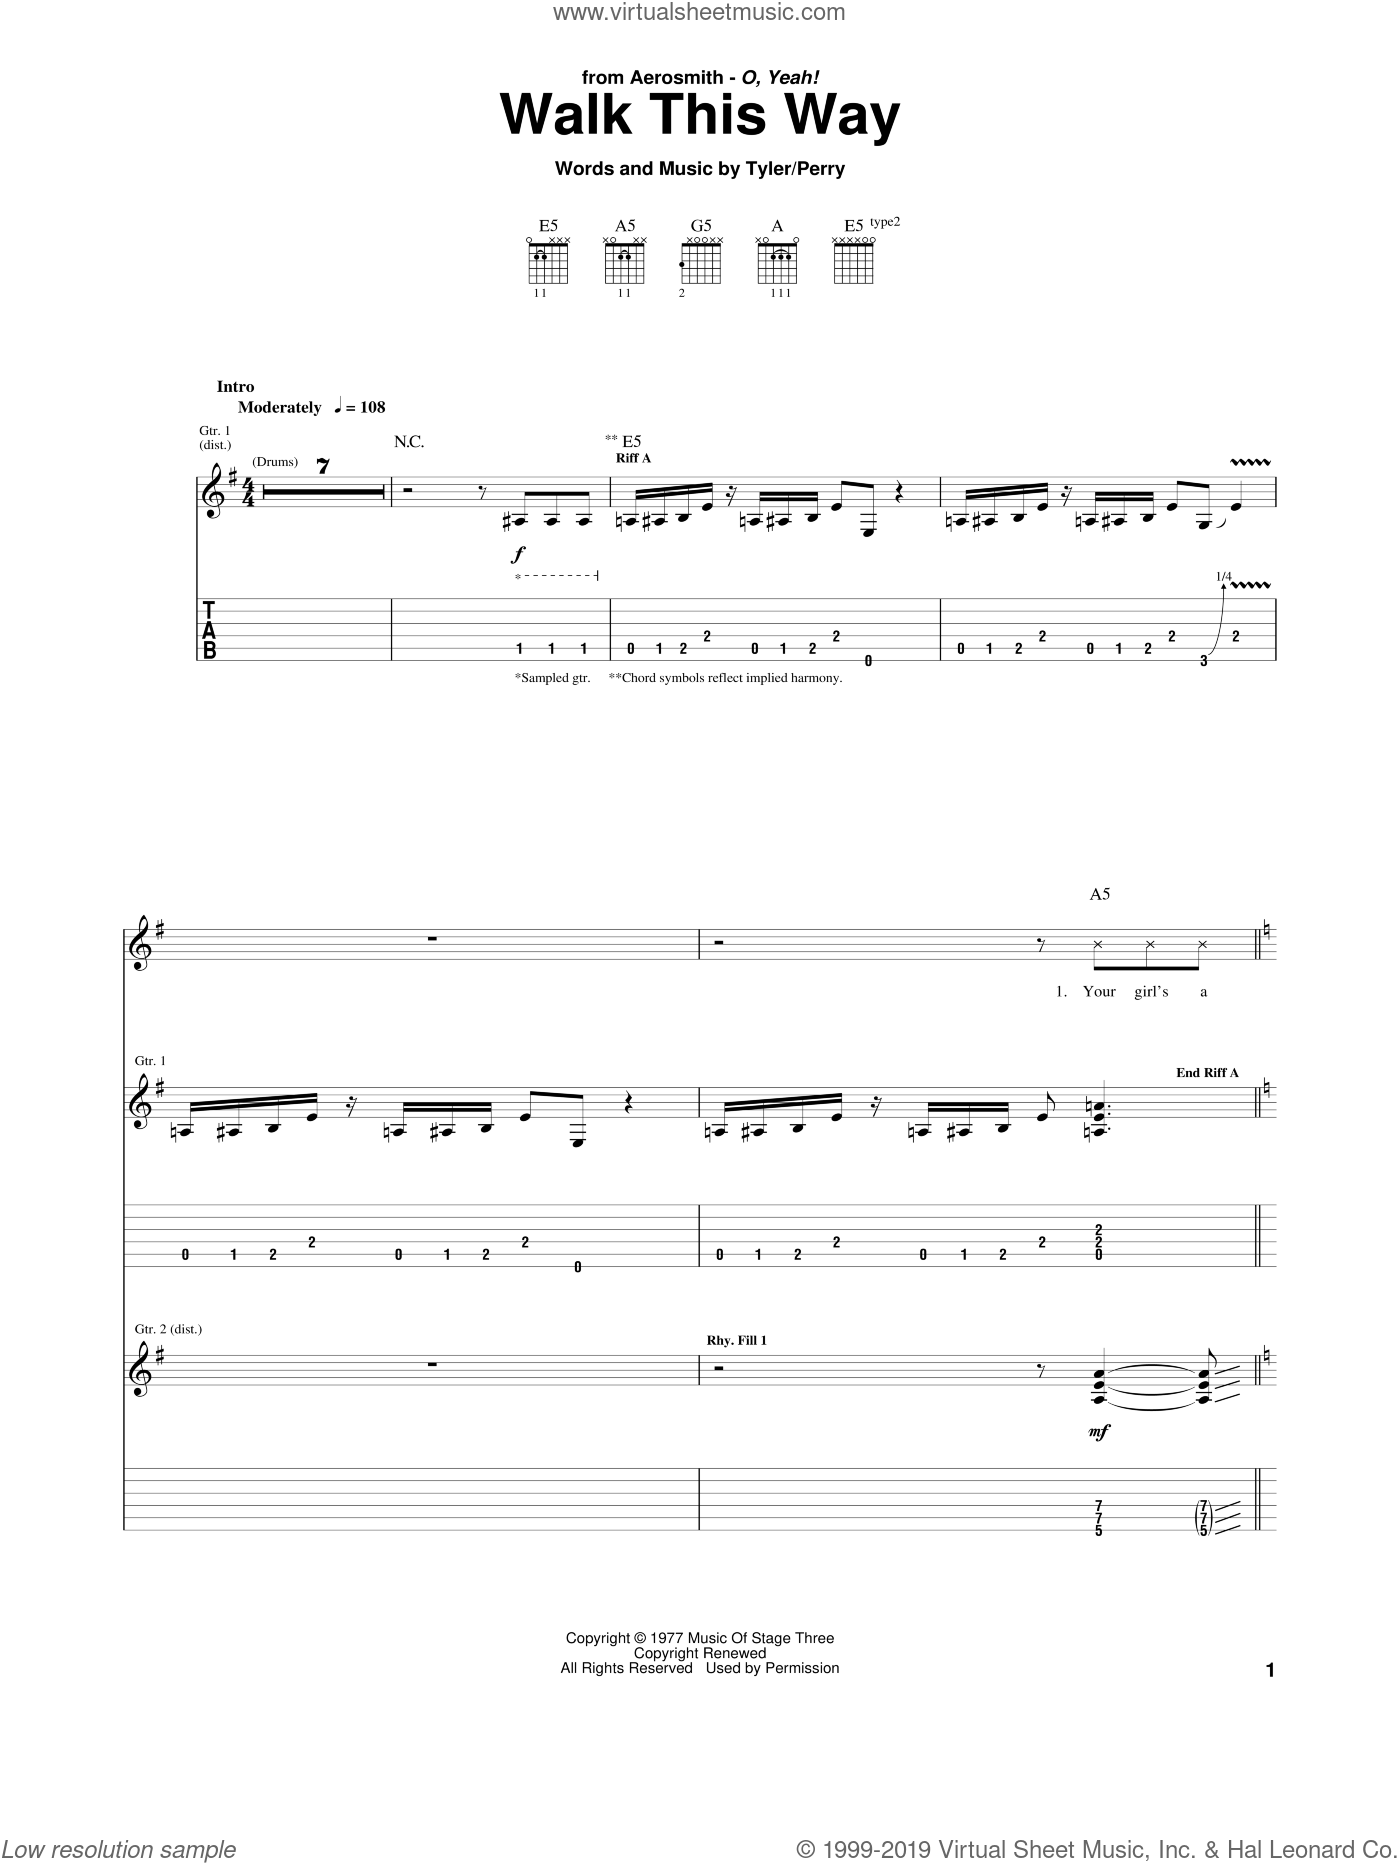 Walk This Way sheet music for guitar (tablature) by Aerosmith & Run D.M.C., Aerosmith, Run D.M.C., Joe Perry and Steven Tyler, intermediate skill level